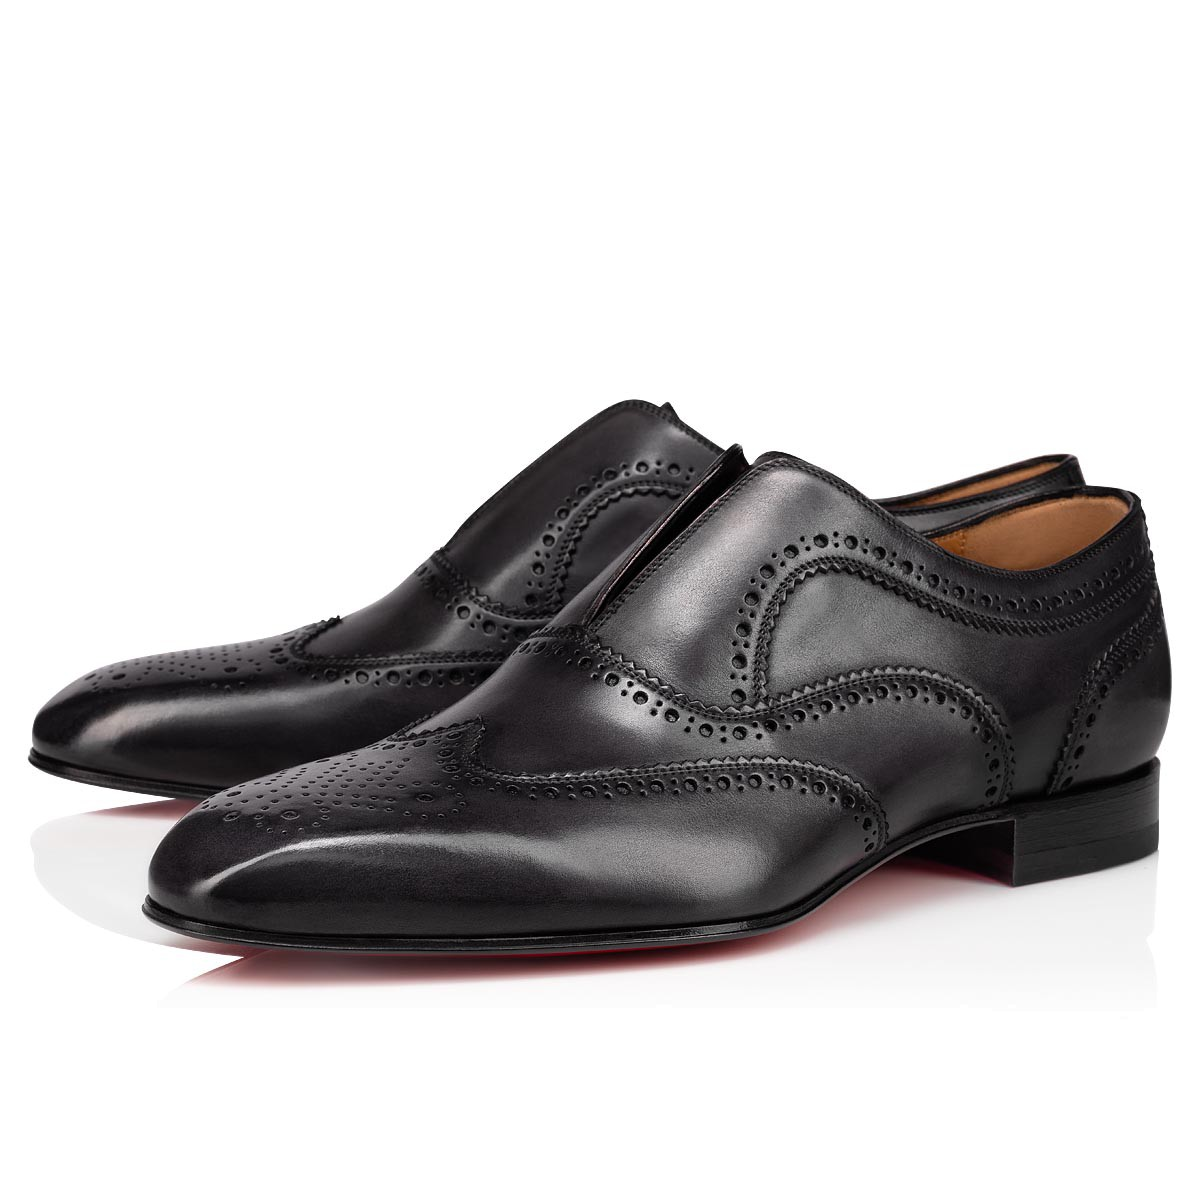 Shoes - Platerboy Flat - Christian Louboutin